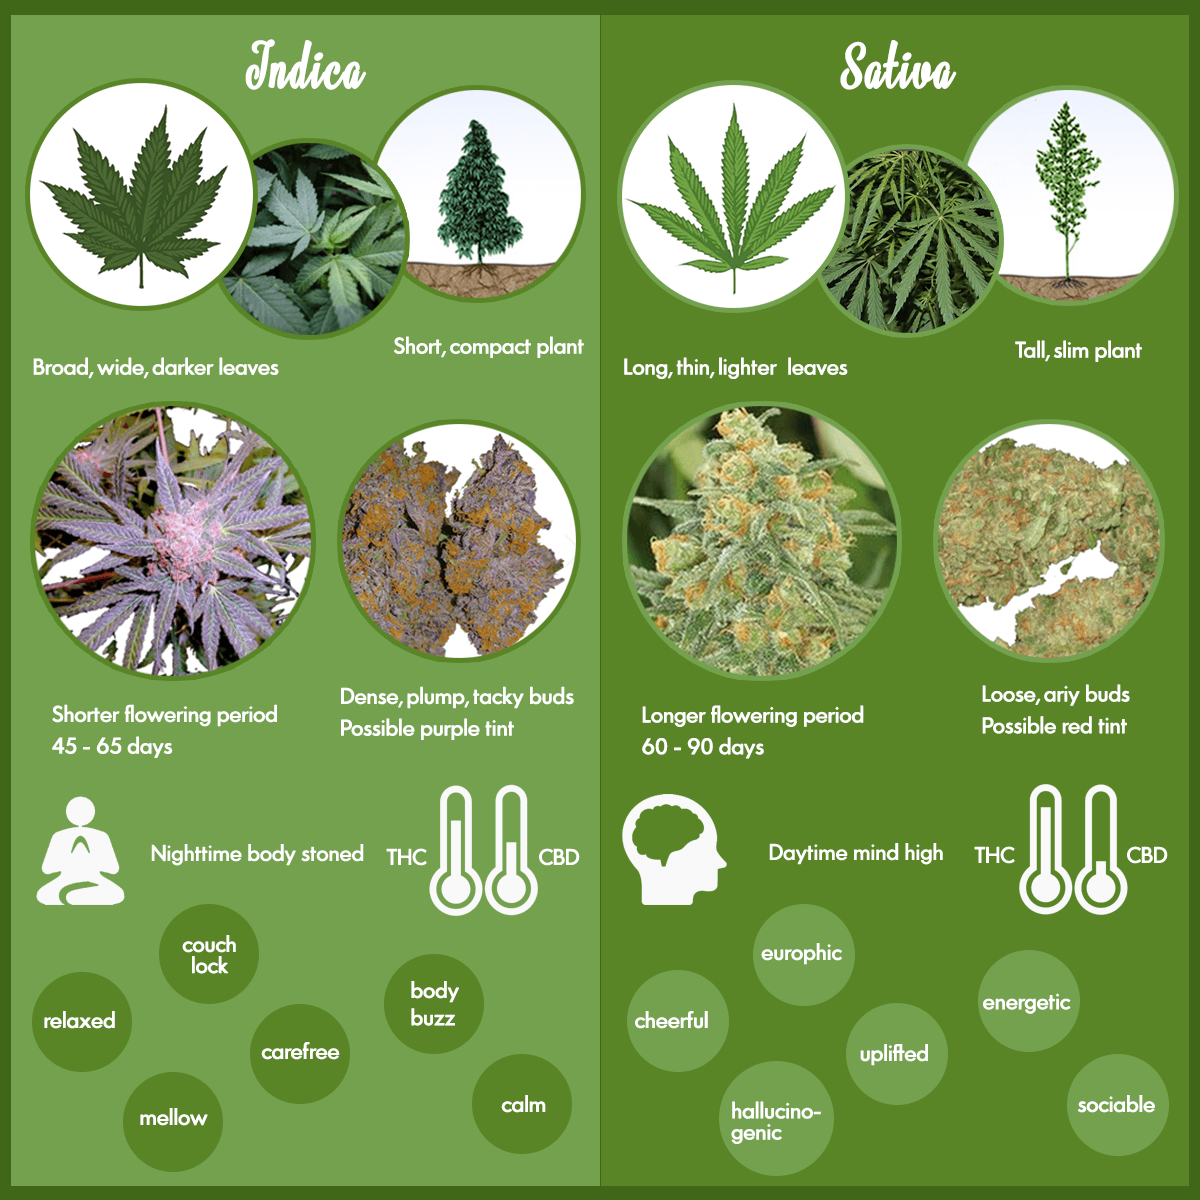 Marijuana strains - Sativa and Indica marijuana strains